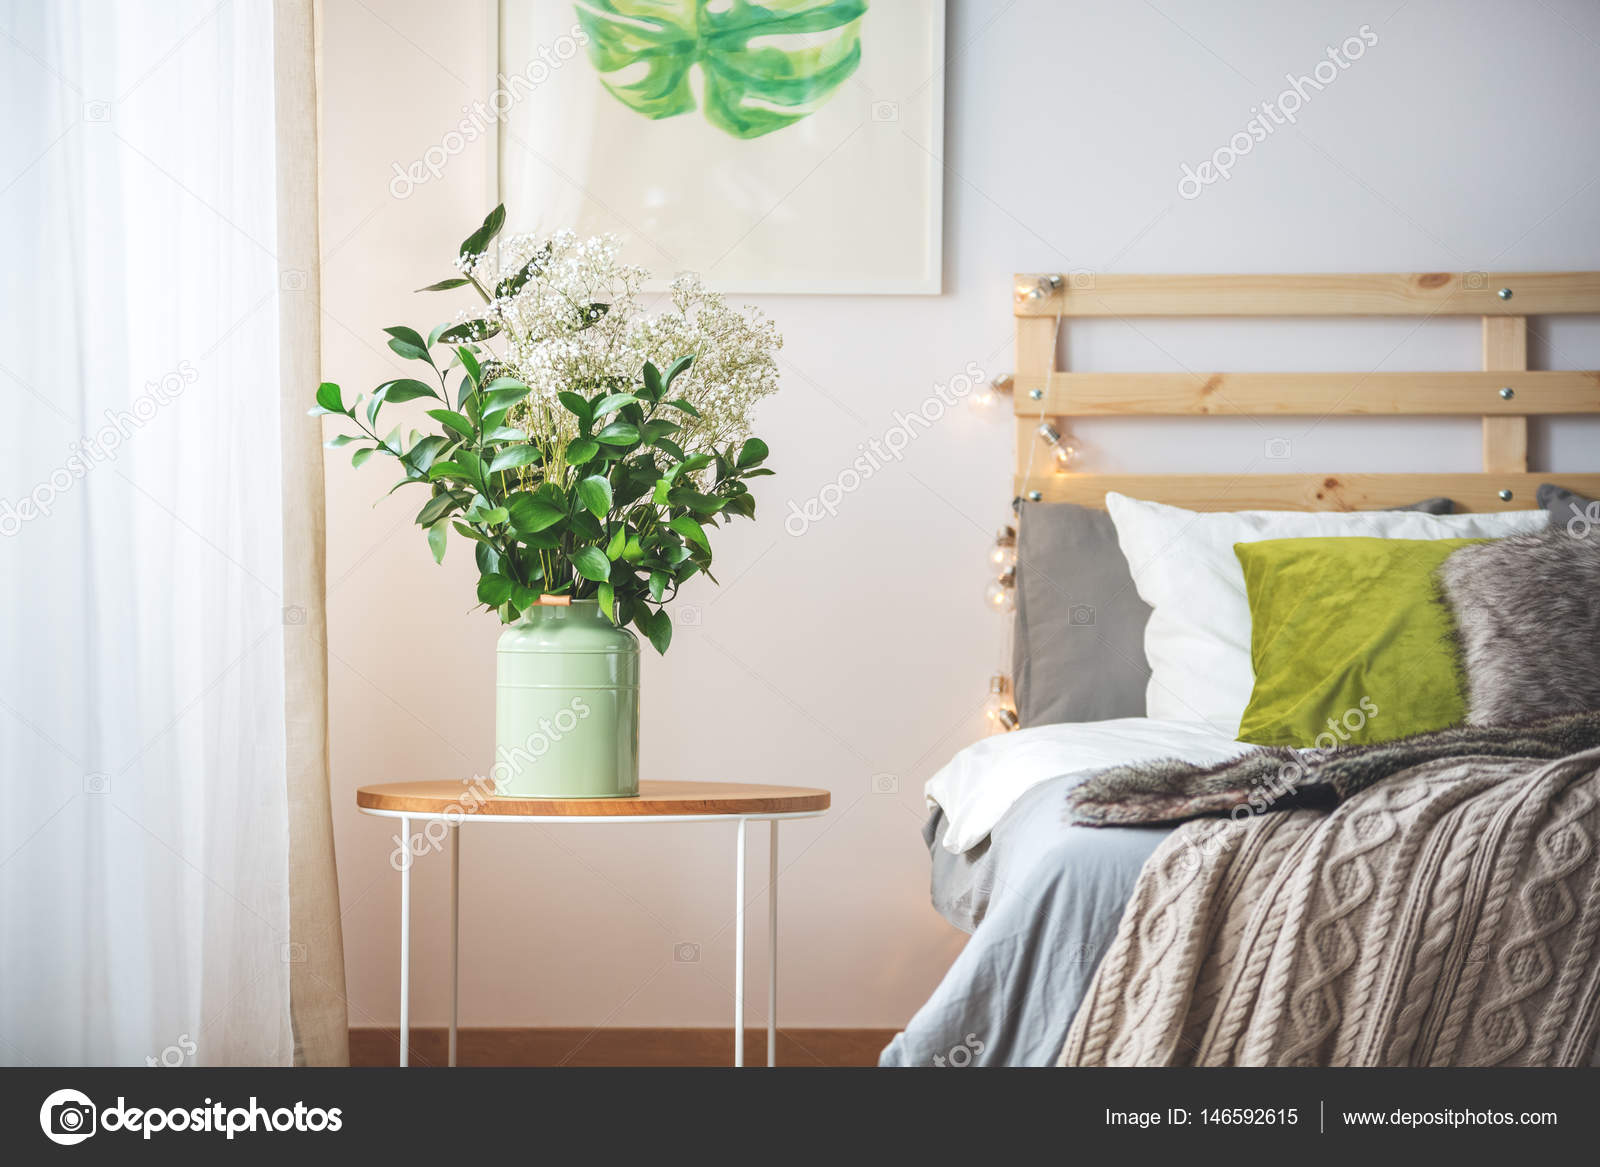 Flowers Next To Bed Stock Photo C Photographee Eu 146592615